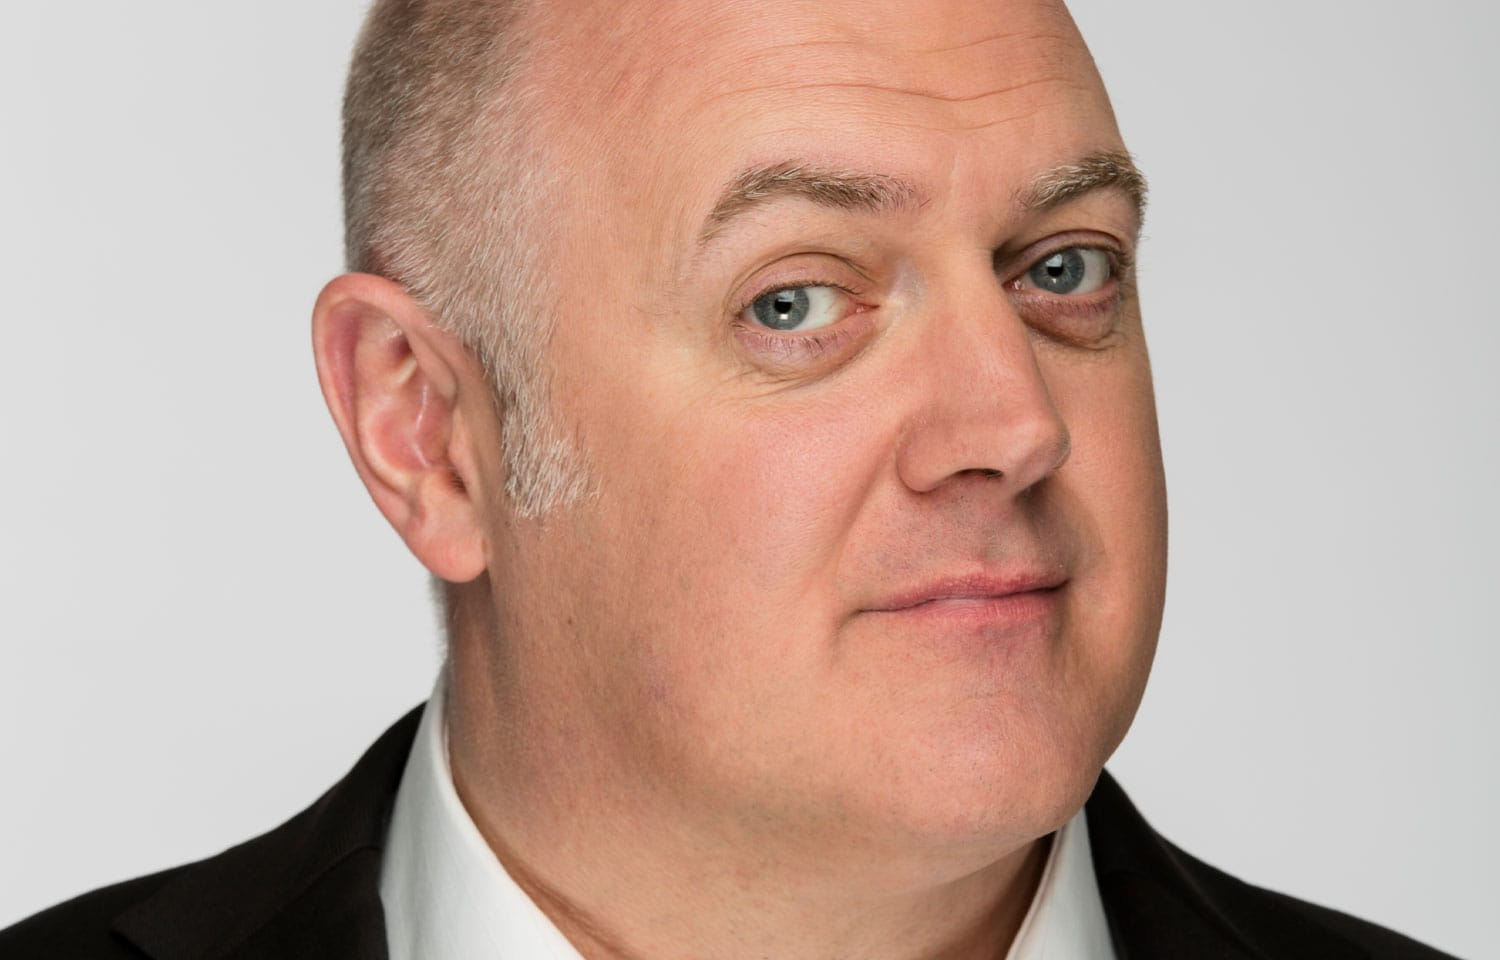 DARA O BRIAIN TO HOST NEW CHANNEL 4 MILLION POUND SHOW